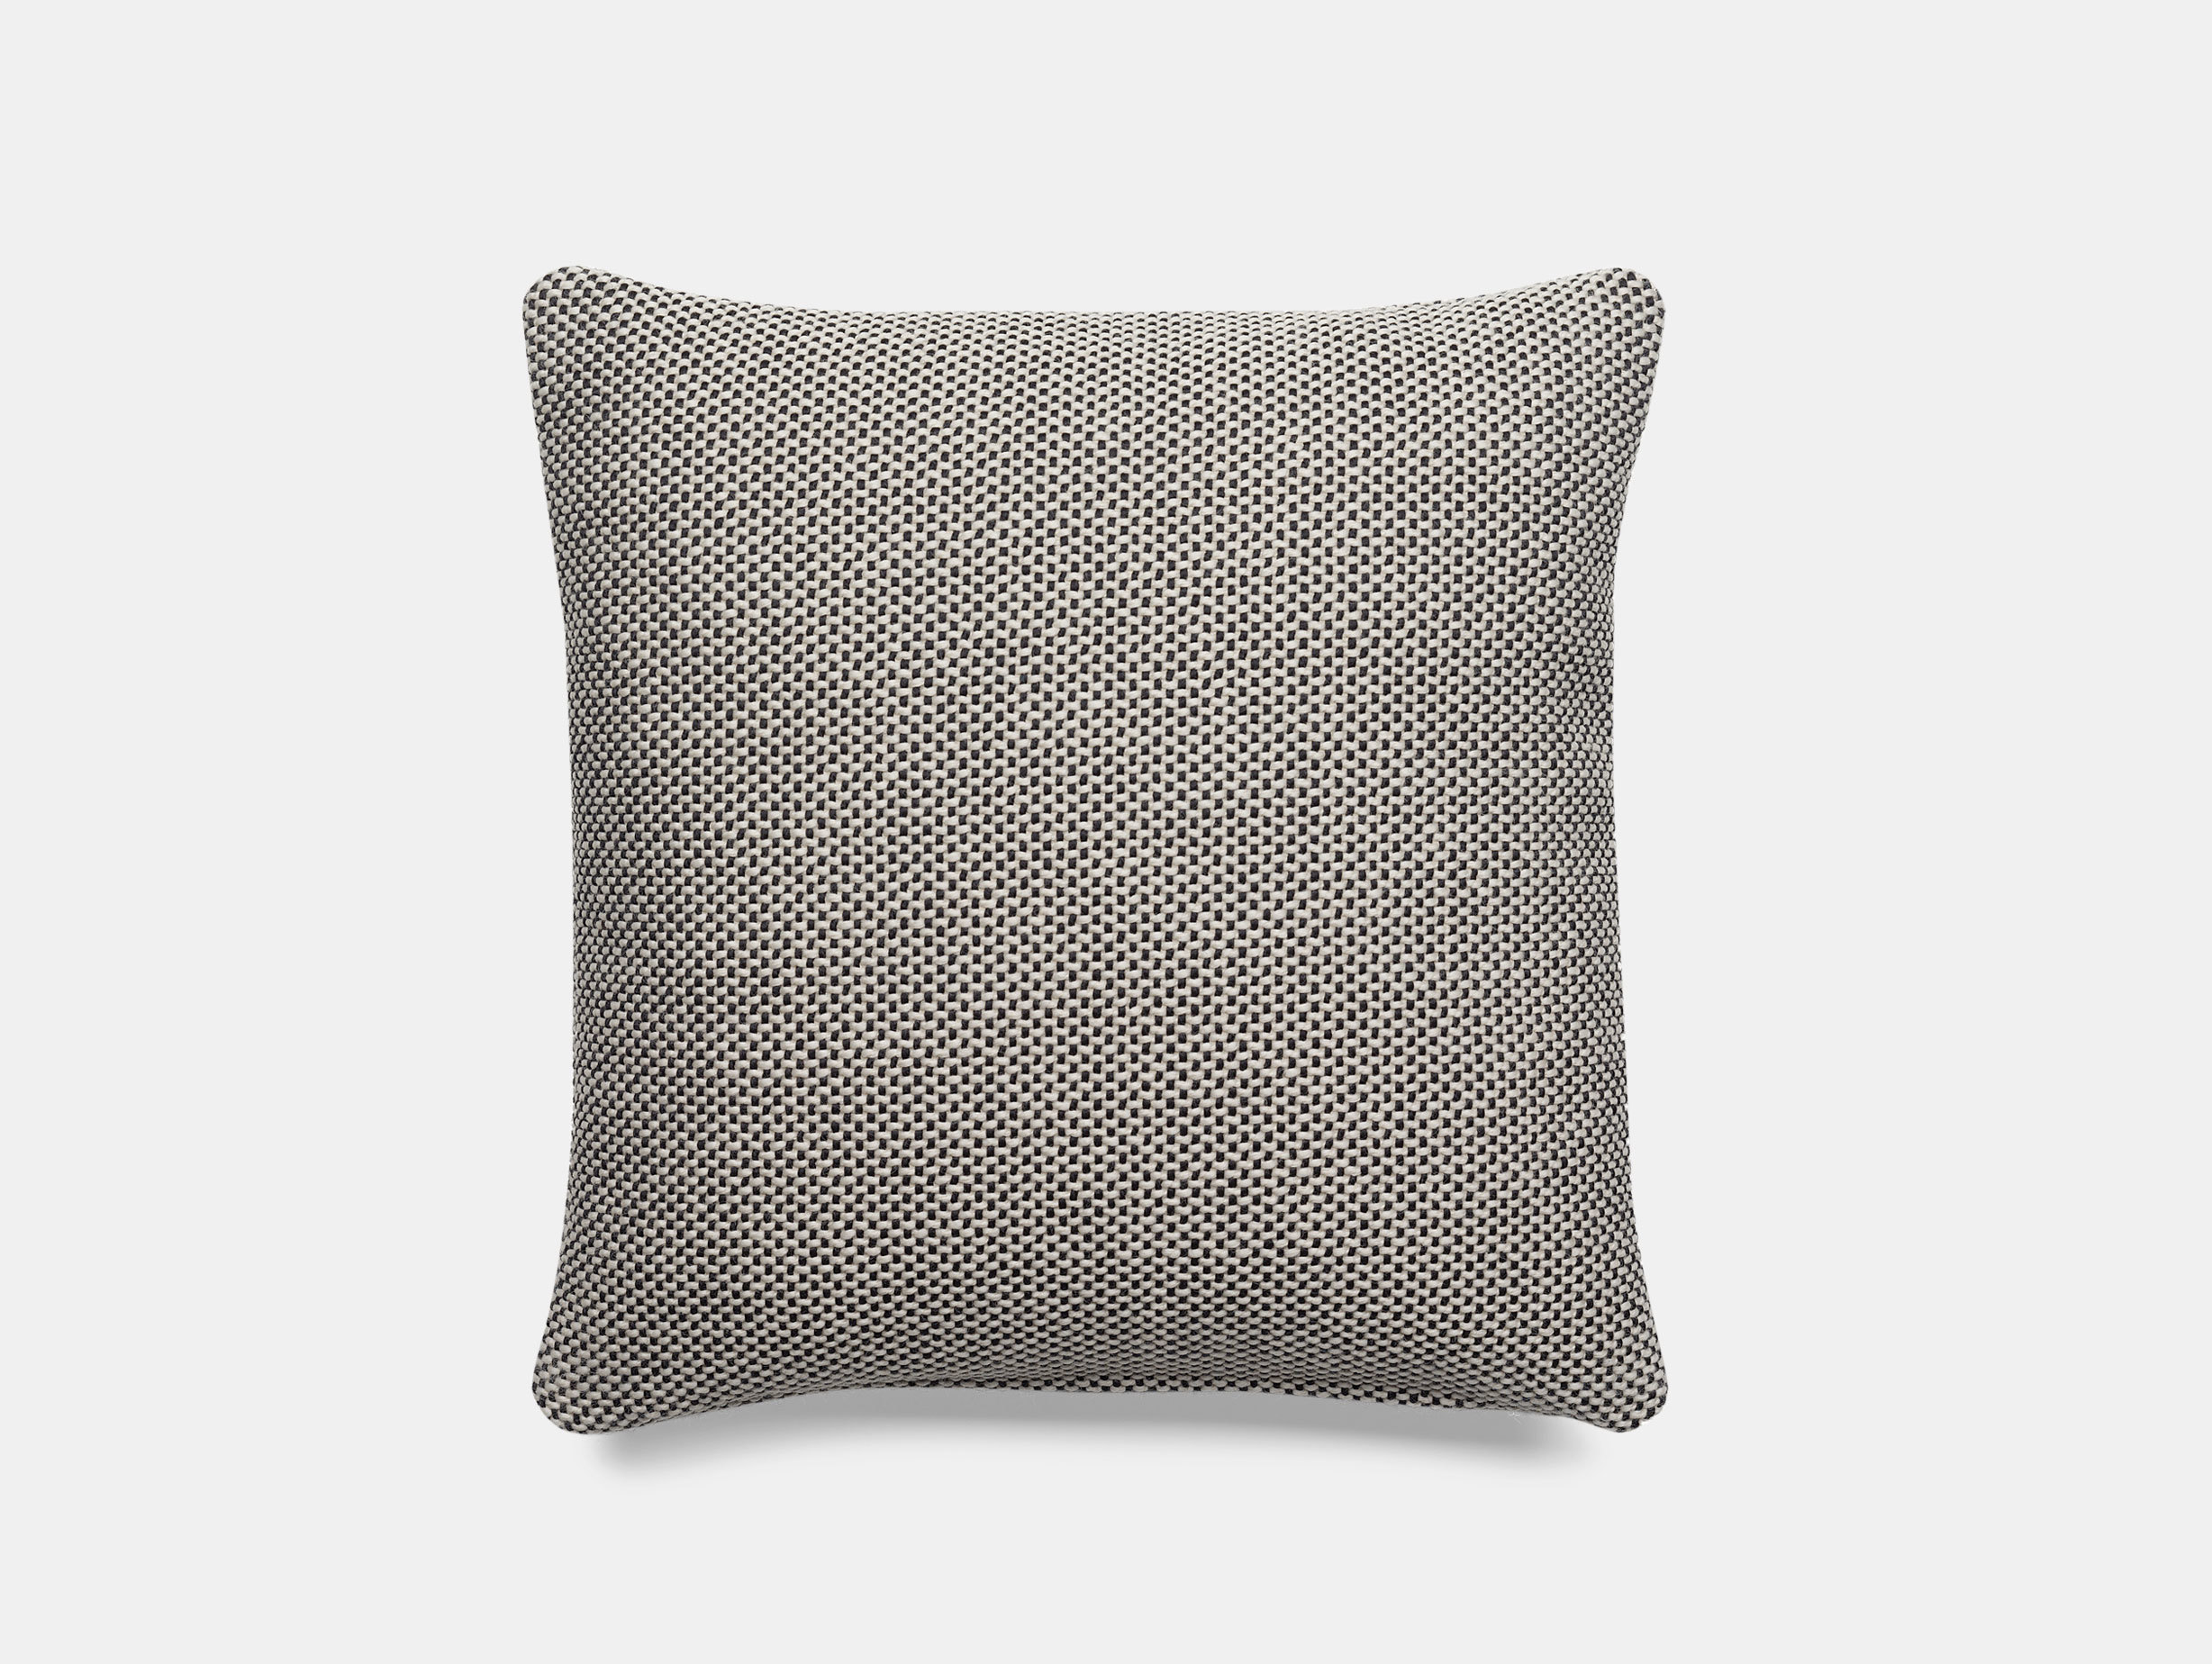 Nima Cushion image 2